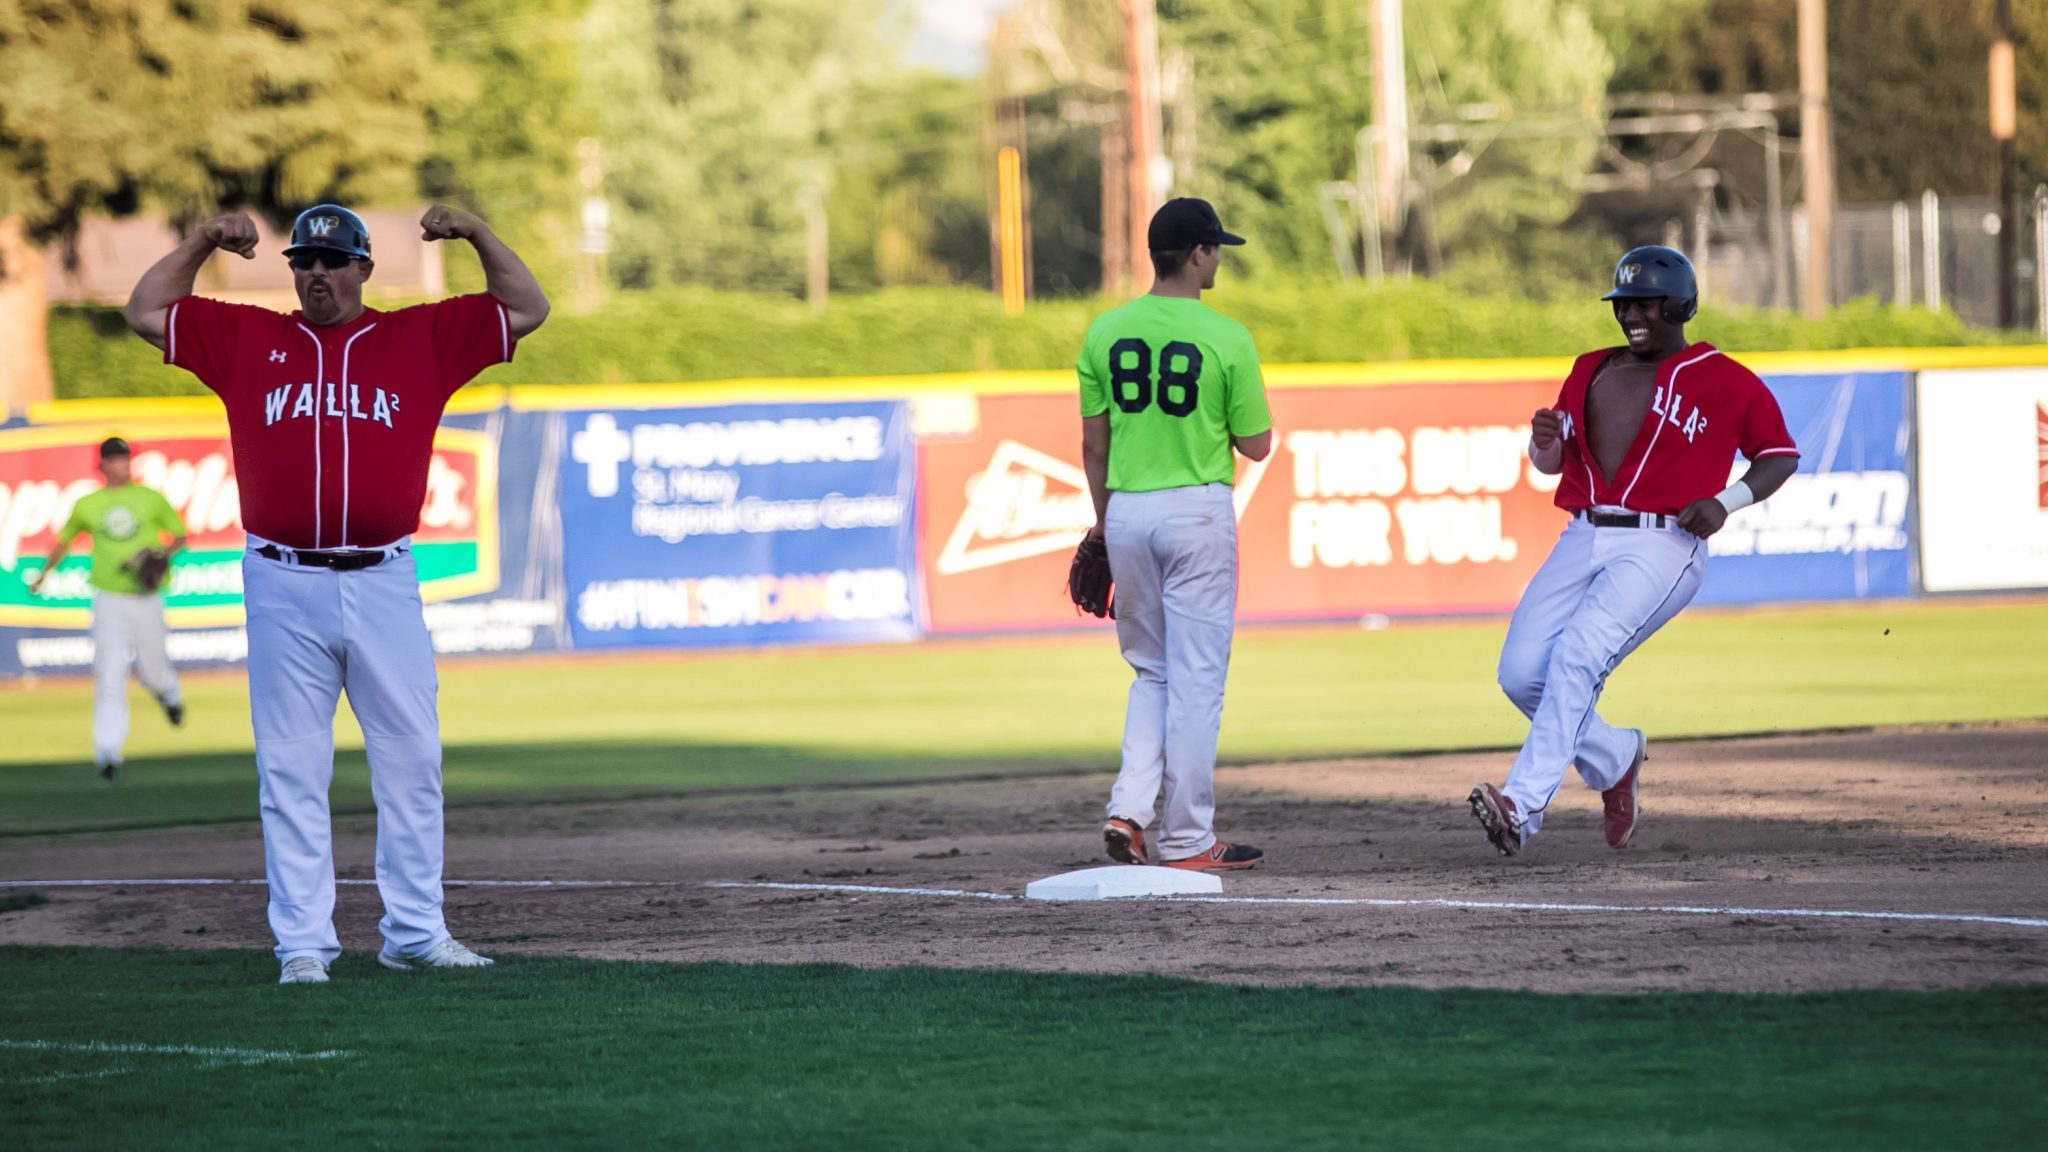 d5d8deb7cc3afd Game Stories - Walla Walla Sweets Baseball